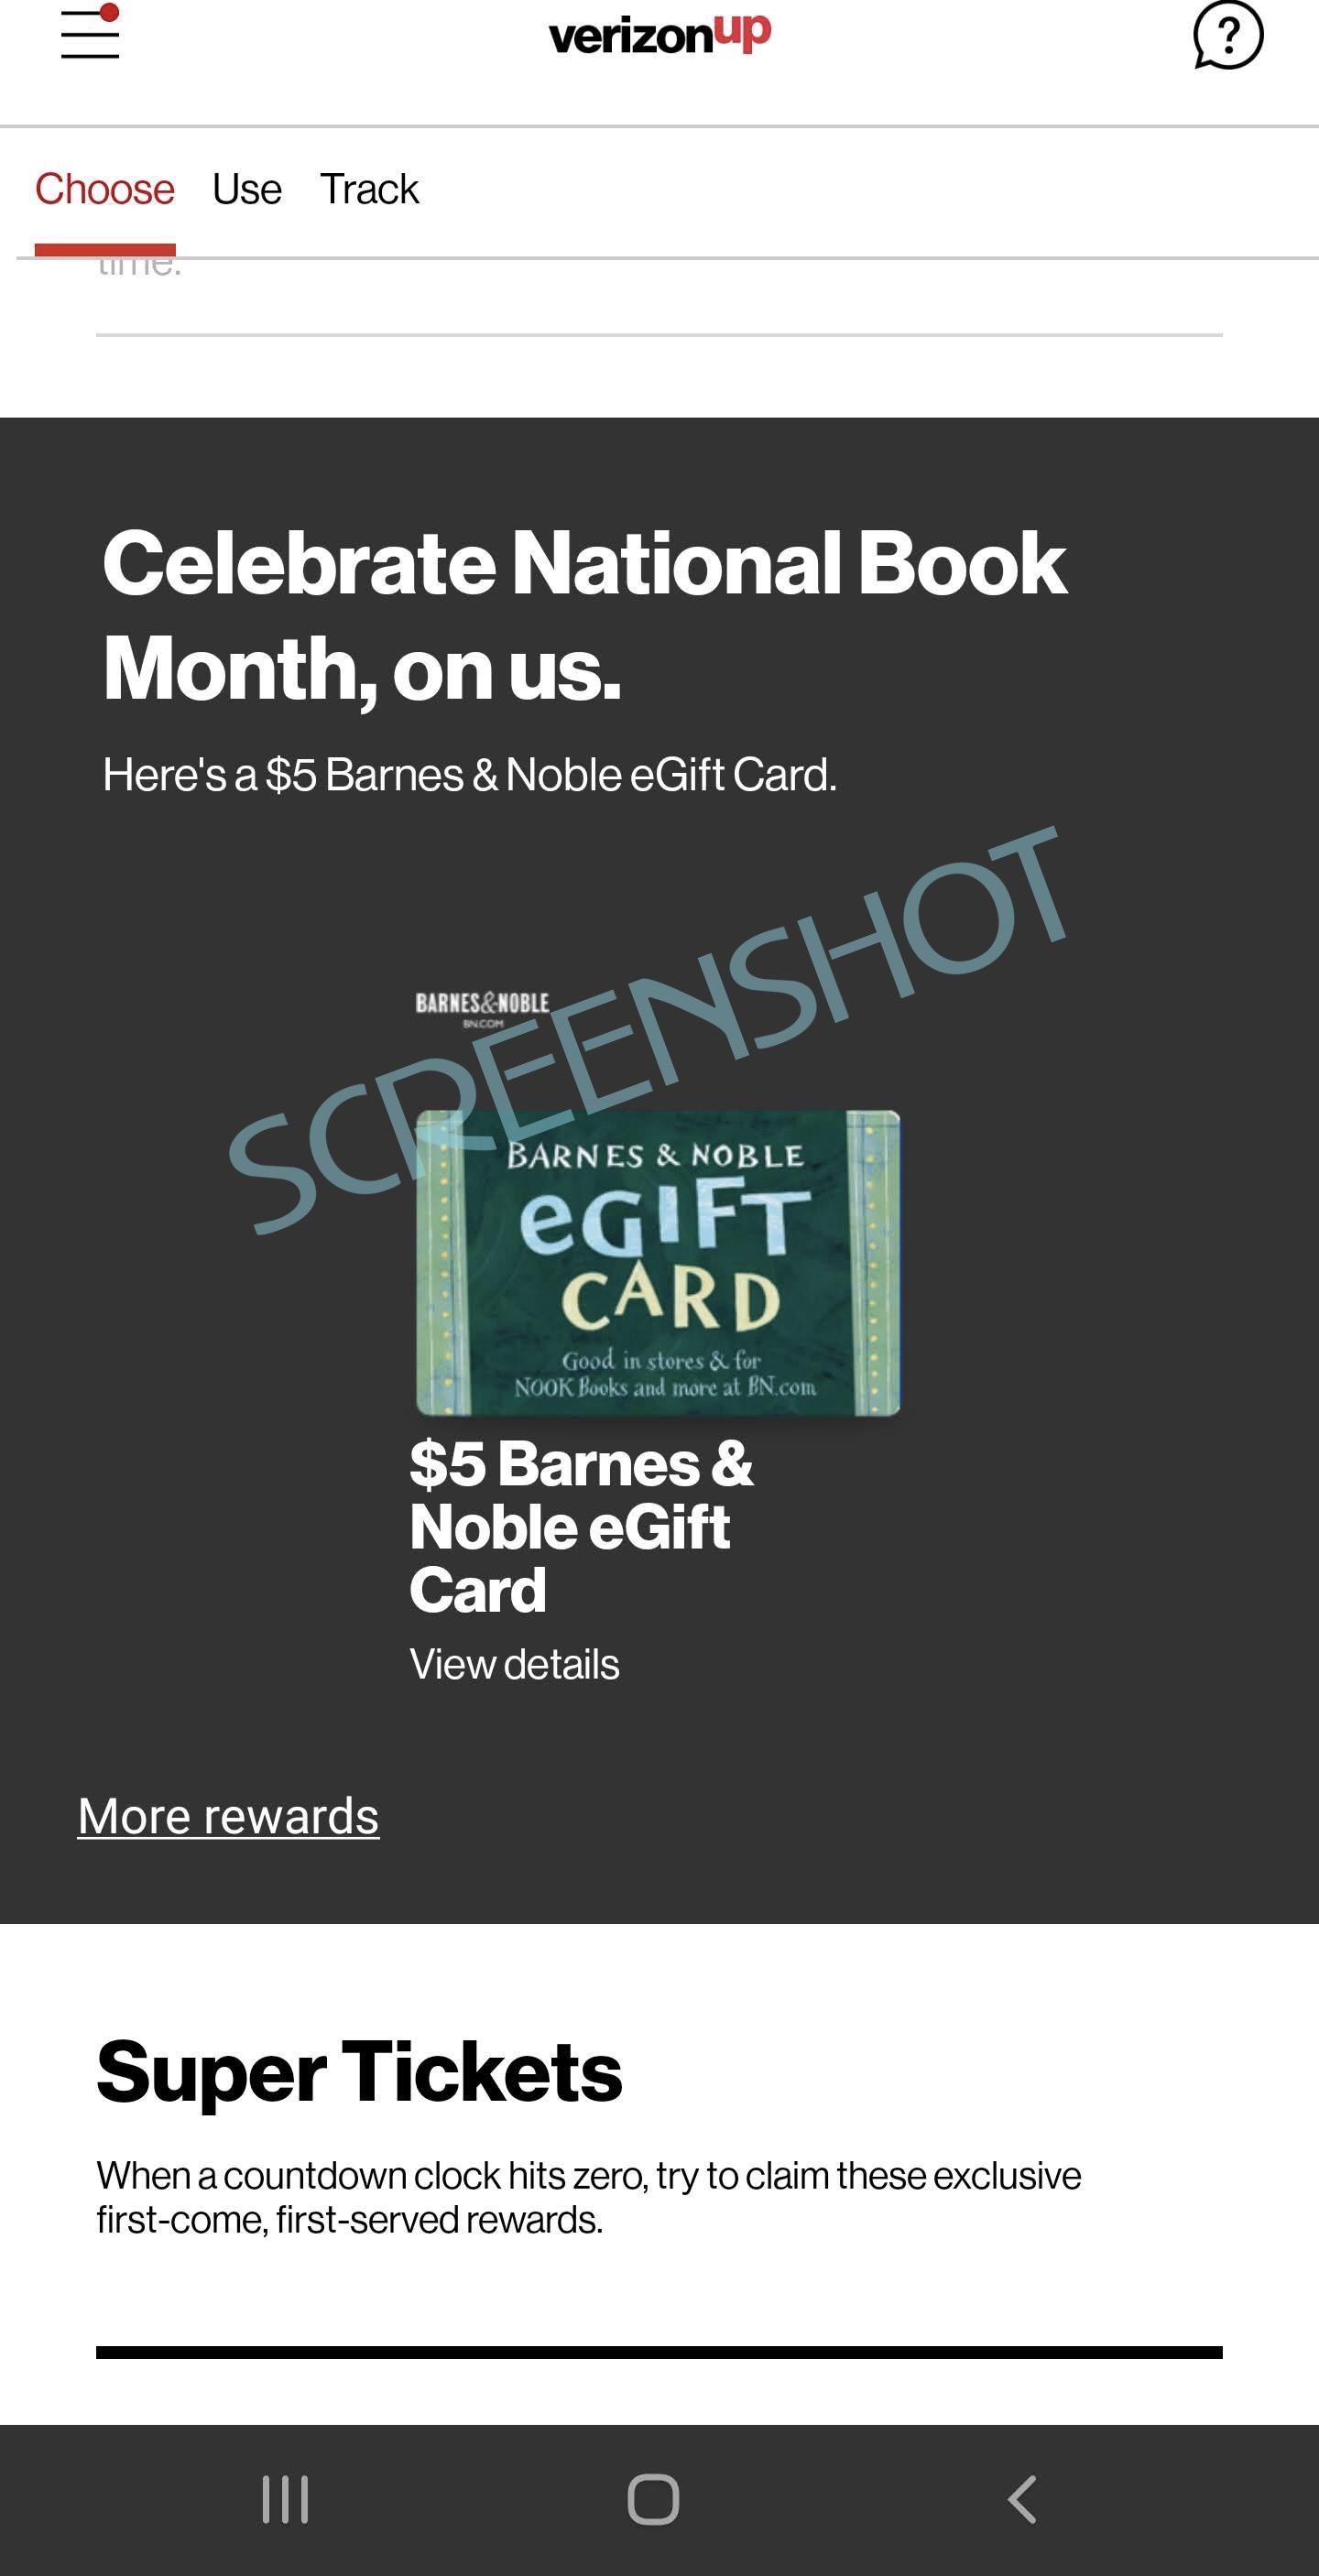 FREE $5 Barnes & Noble eGift Card  Offer in the Verizon Up Rewards App